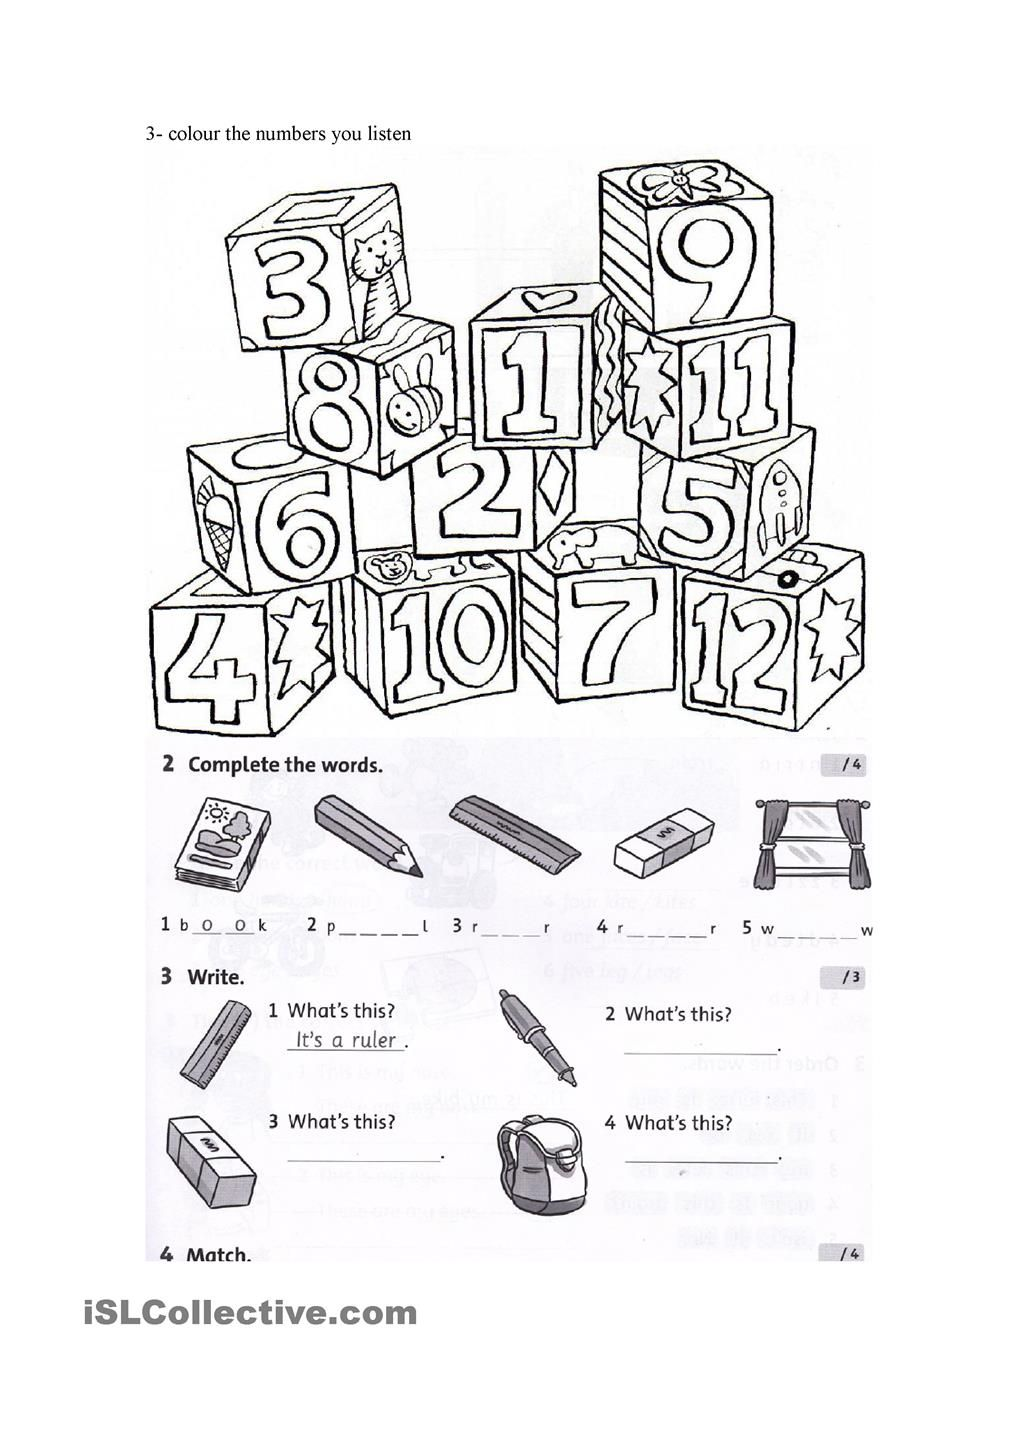 test on colours, numbers and school objects | English classes ...